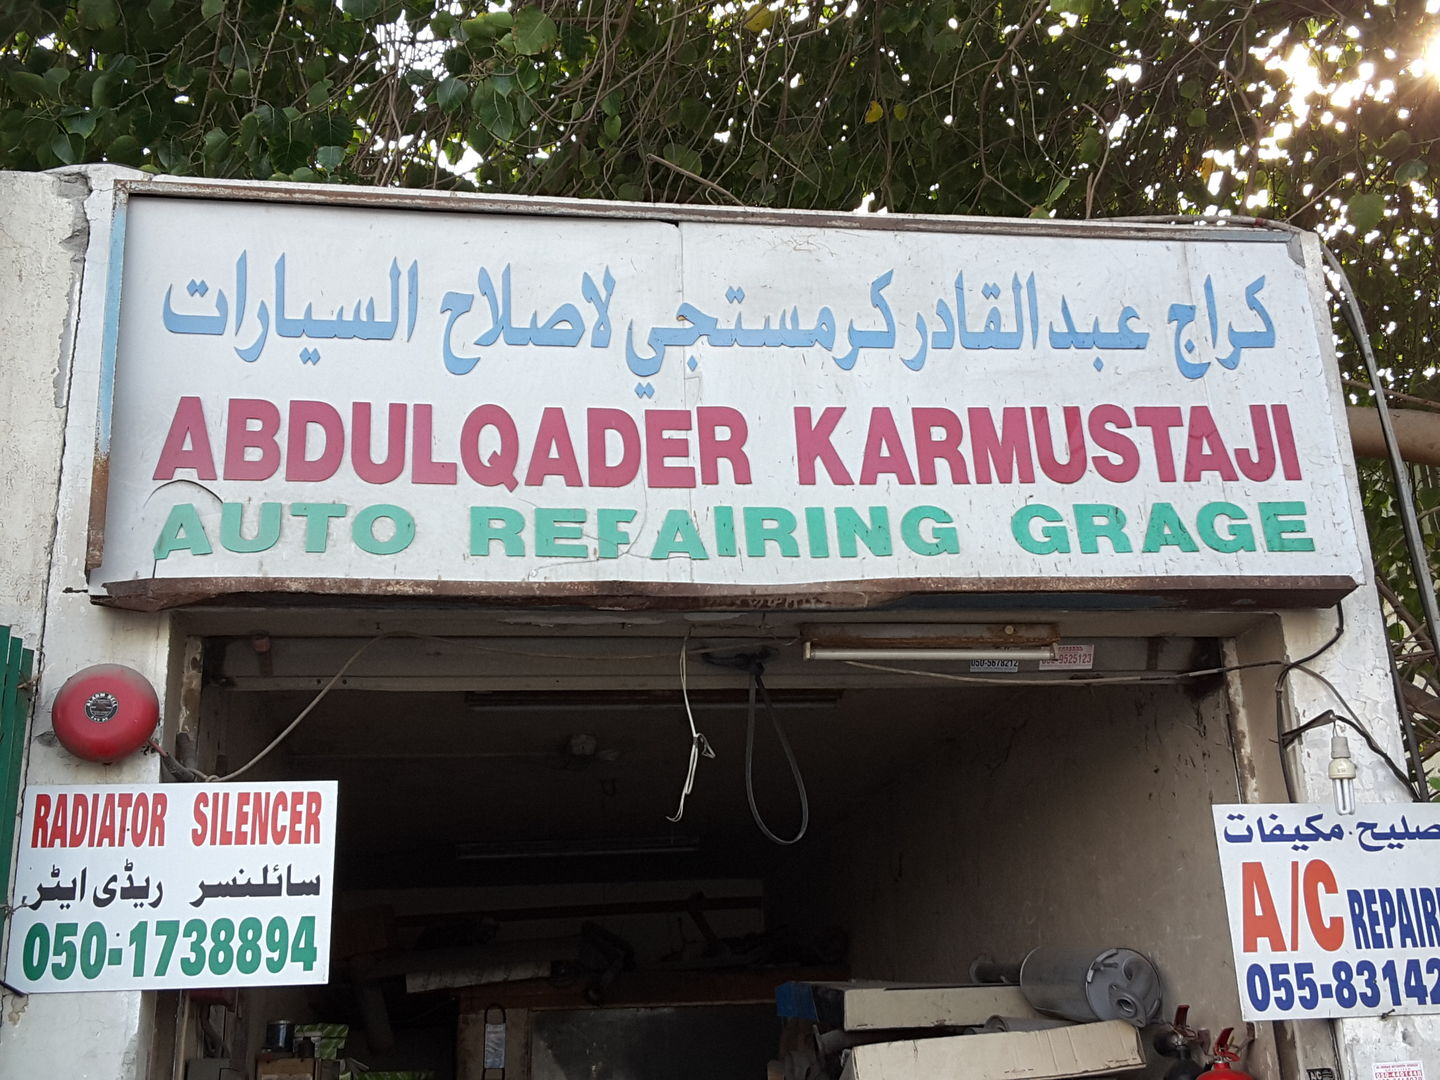 HiDubai-business-abdul-qader-karmustaji-auto-repairing-garage-transport-vehicle-services-car-assistance-repair-ras-al-khor-industrial-1-dubai-2